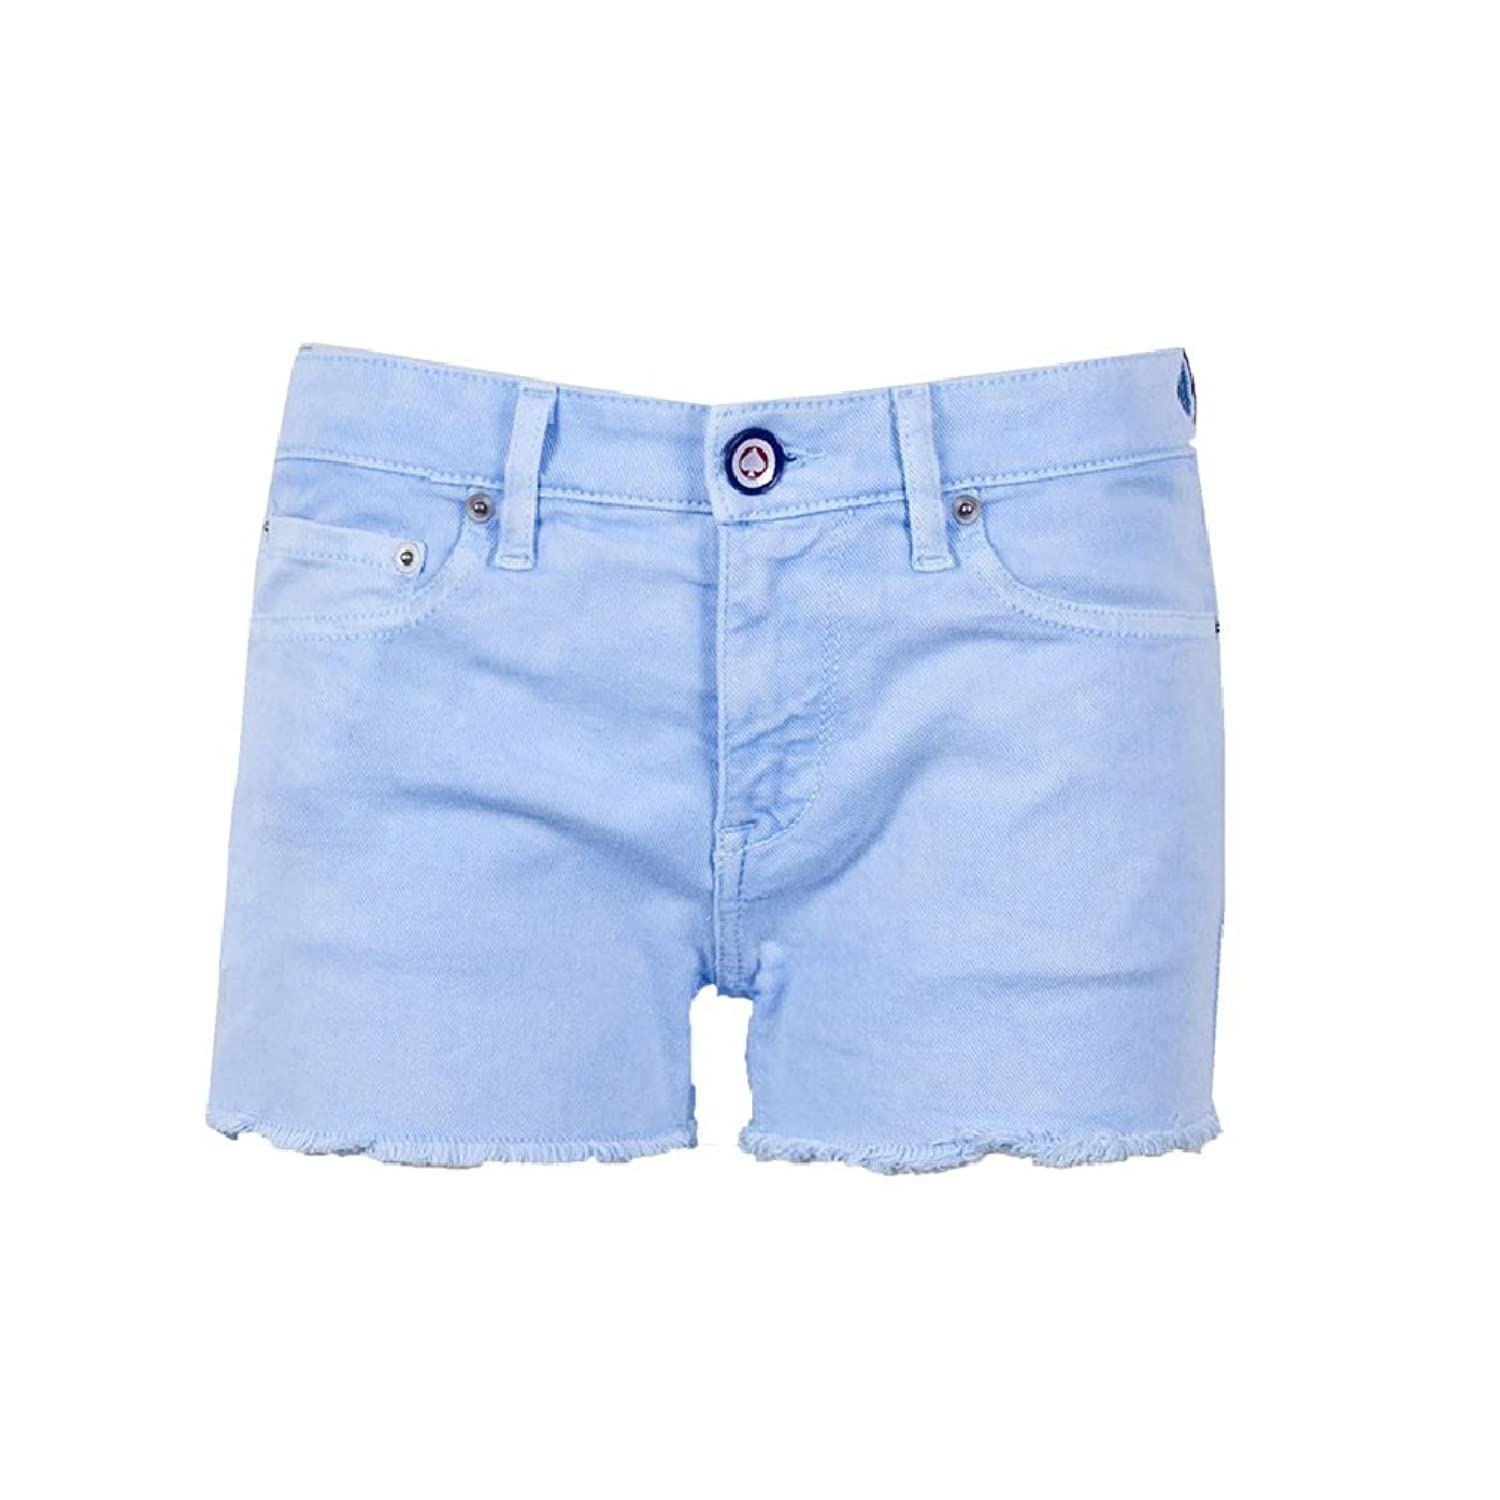 Modfitters Women's Janis Shorts With Chain Cotton